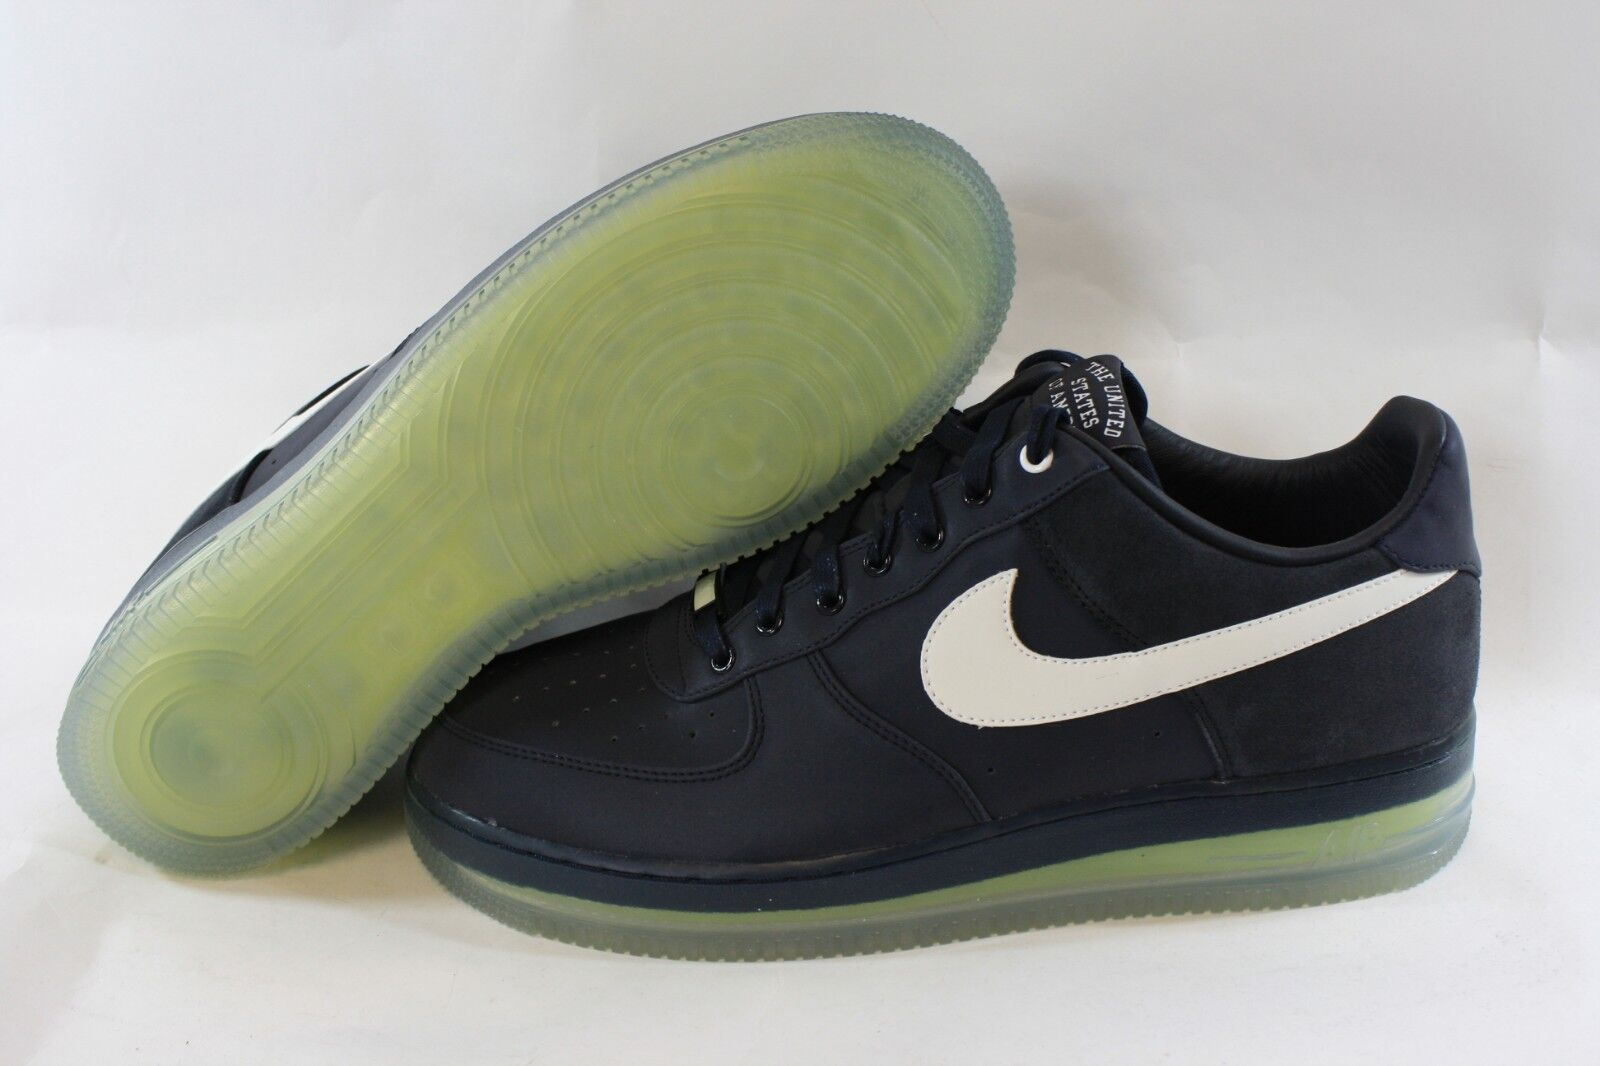 NEW Mens NIKE Air Force 1 Low Max Air NRG 532252 410 Sneakers shoes